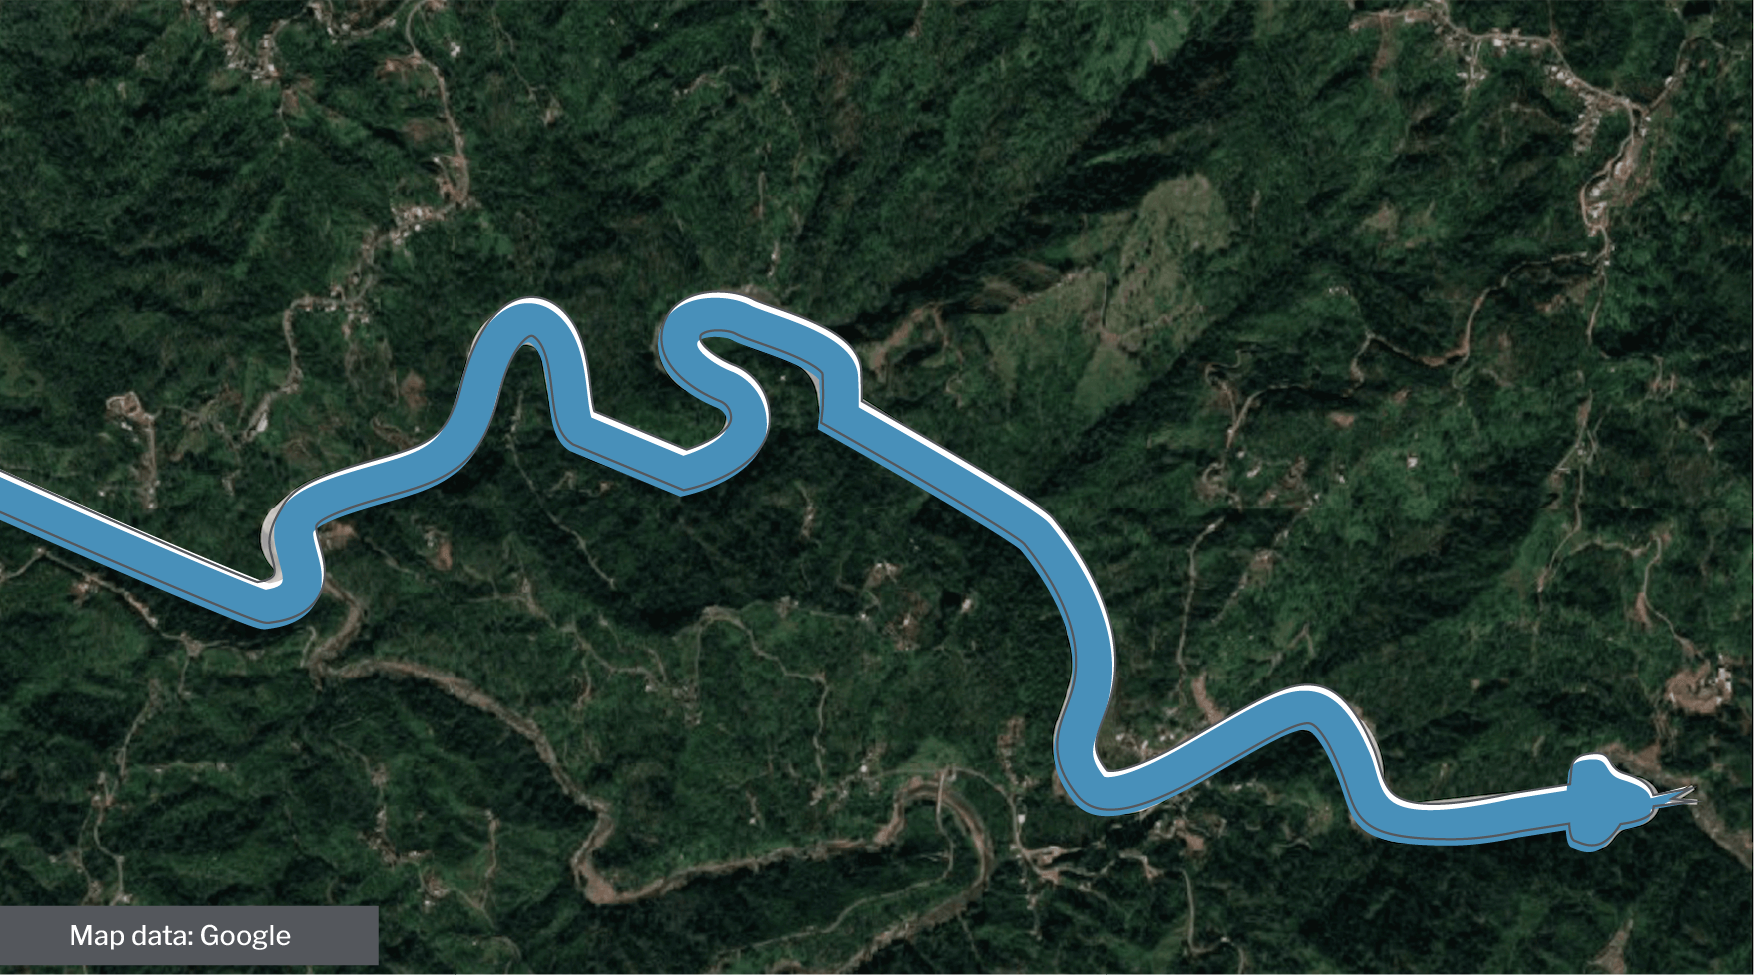 Graphical drawing of a snake overlaid on a Google map image of a mountainous Puerto Rican terrain.